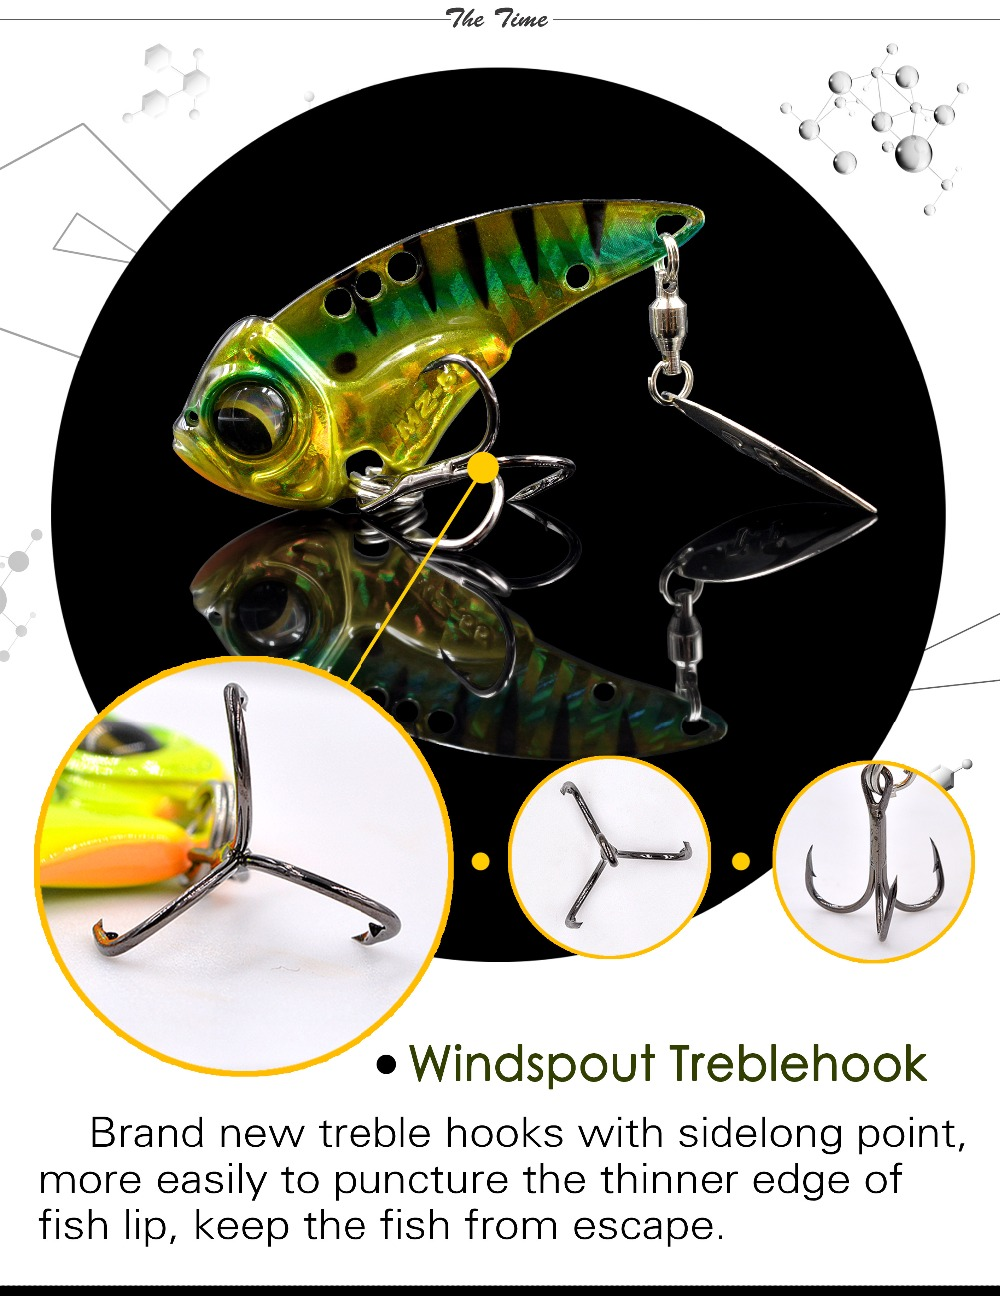 The Time Brand Miracle Crank Metal Vibration Lures Mz55 Fishing Vib Lure Minnow 85 Cm 68gr Bait Treble Hook Crankbait High Quality Vibrador 55mm 14g All Water Sinking Artificial Vibrator